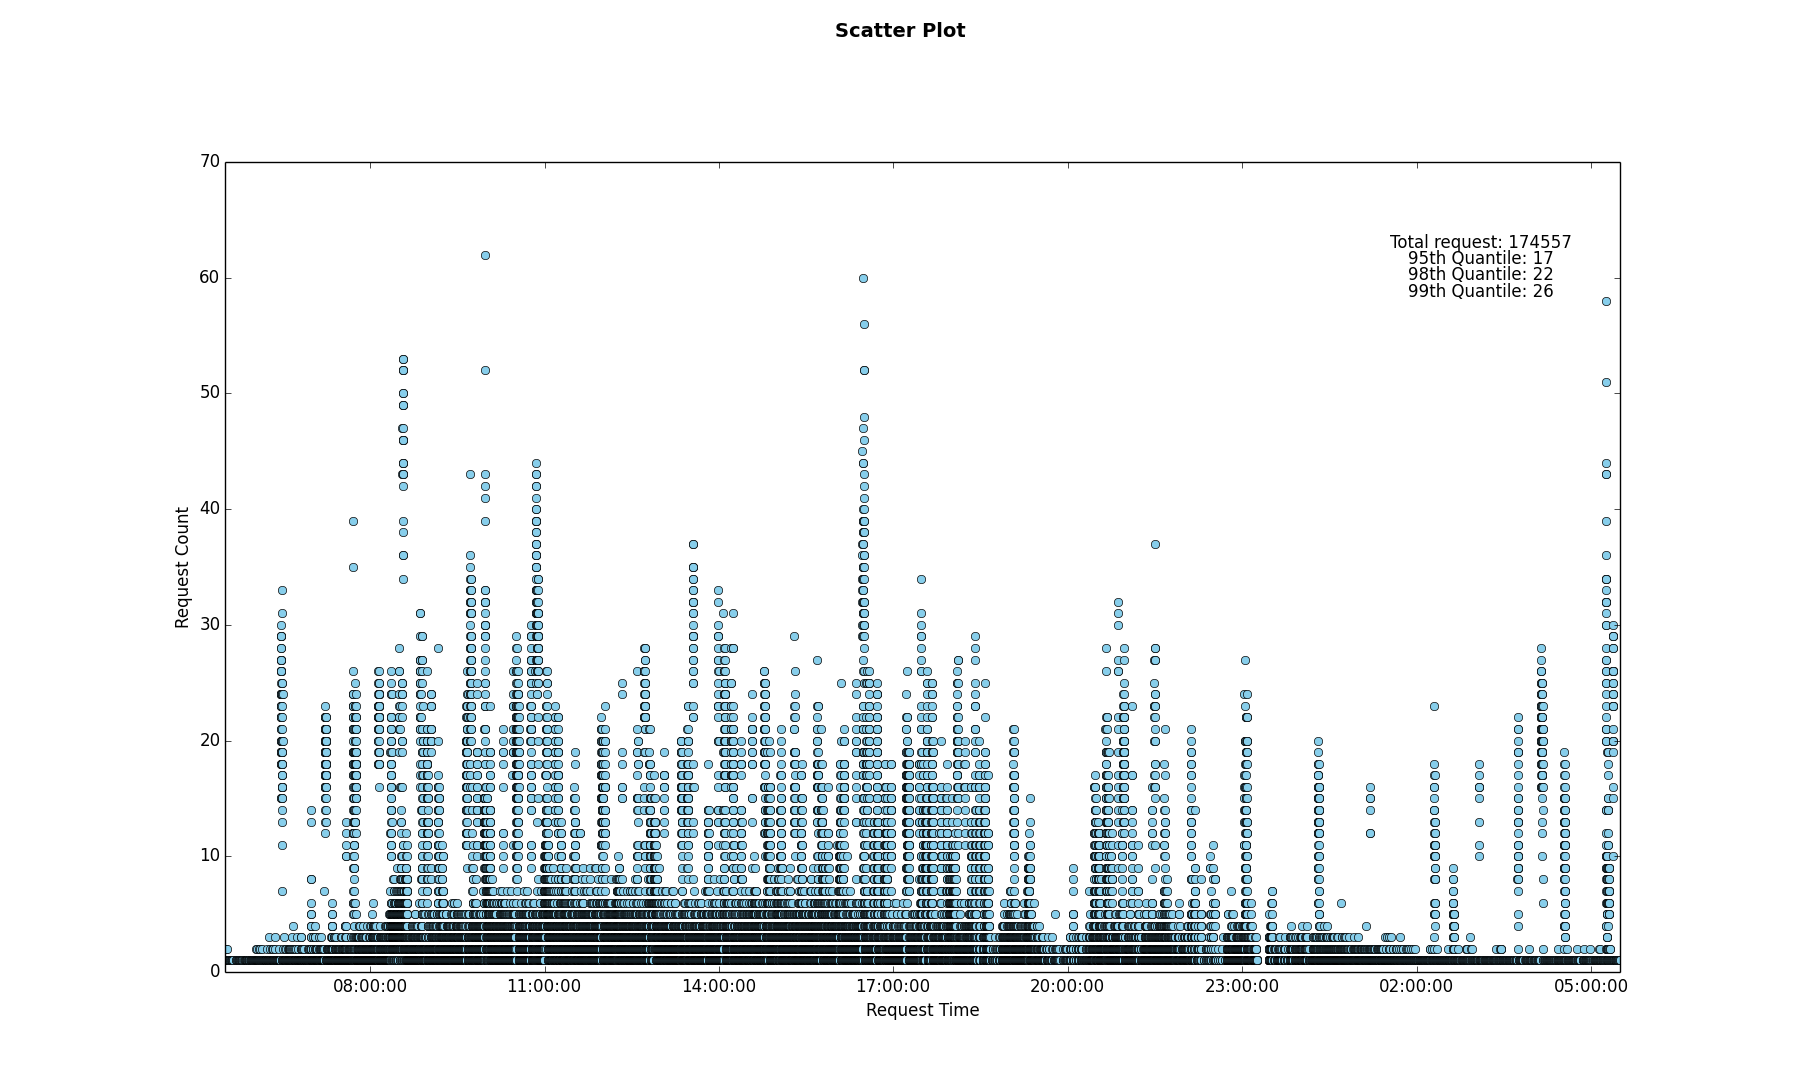 Time-Series Scatter Plot of Server Requests using Python